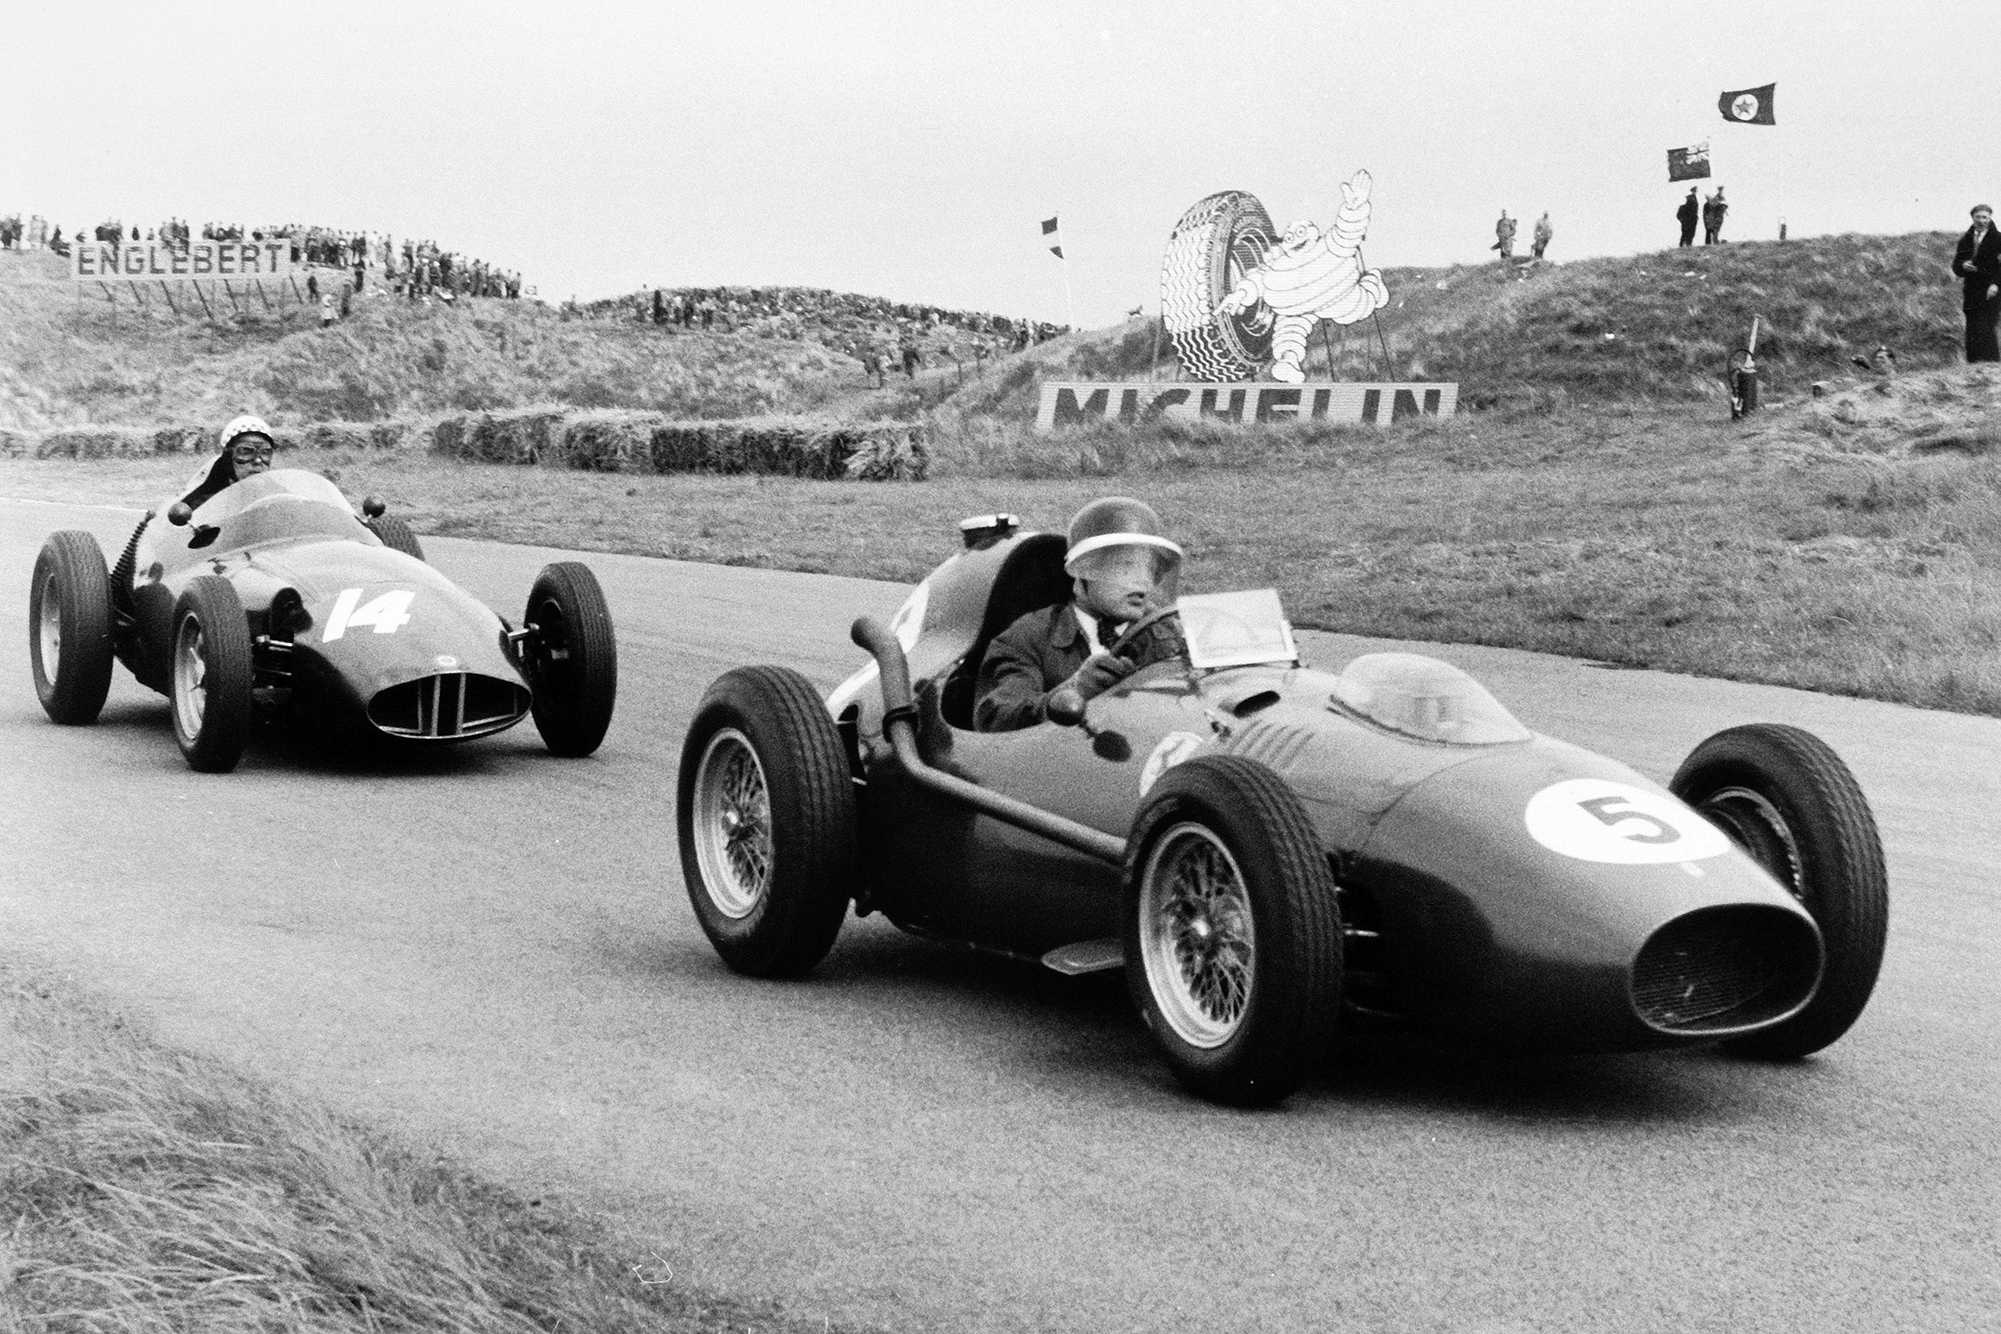 Mike Hawthorn driving the Ferrari Dino 246 in 5th position, leads Jean Behra, BRM P25 in 3rd position